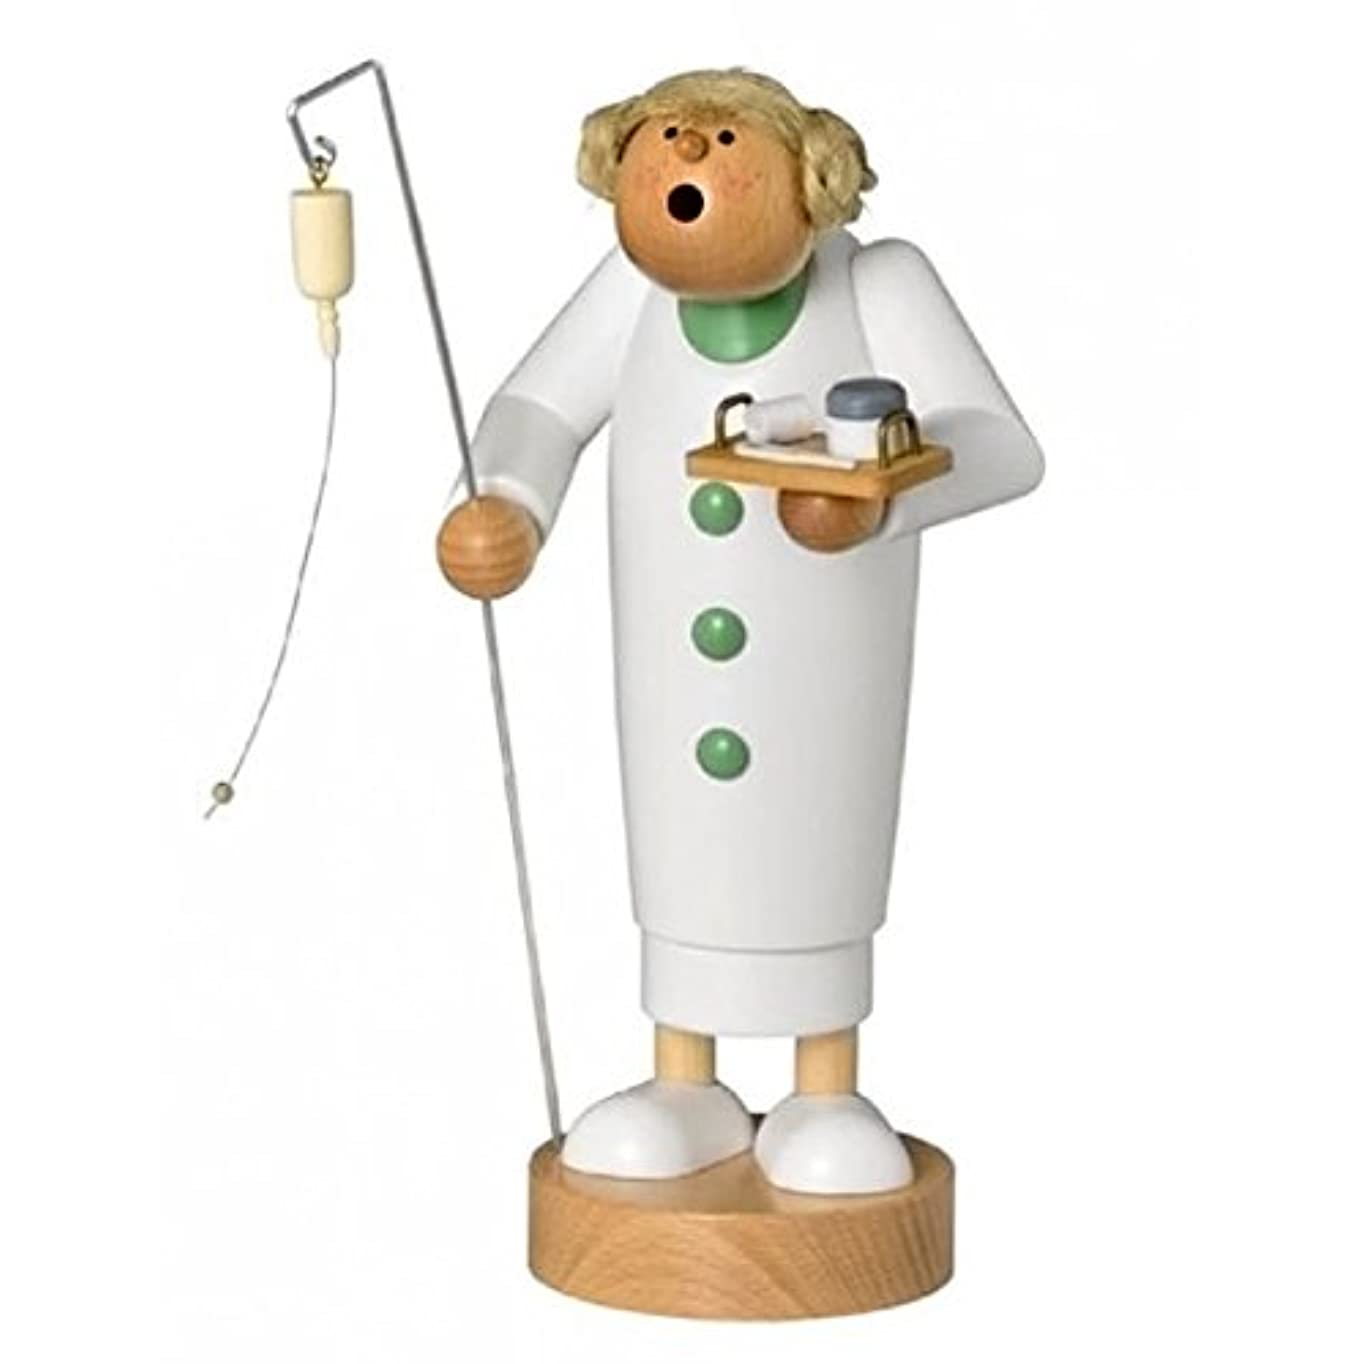 正直アスレチックカビ看護婦Medicine German Smoker Incense Burner – ドイツ製 – Over 9 Inches Tall